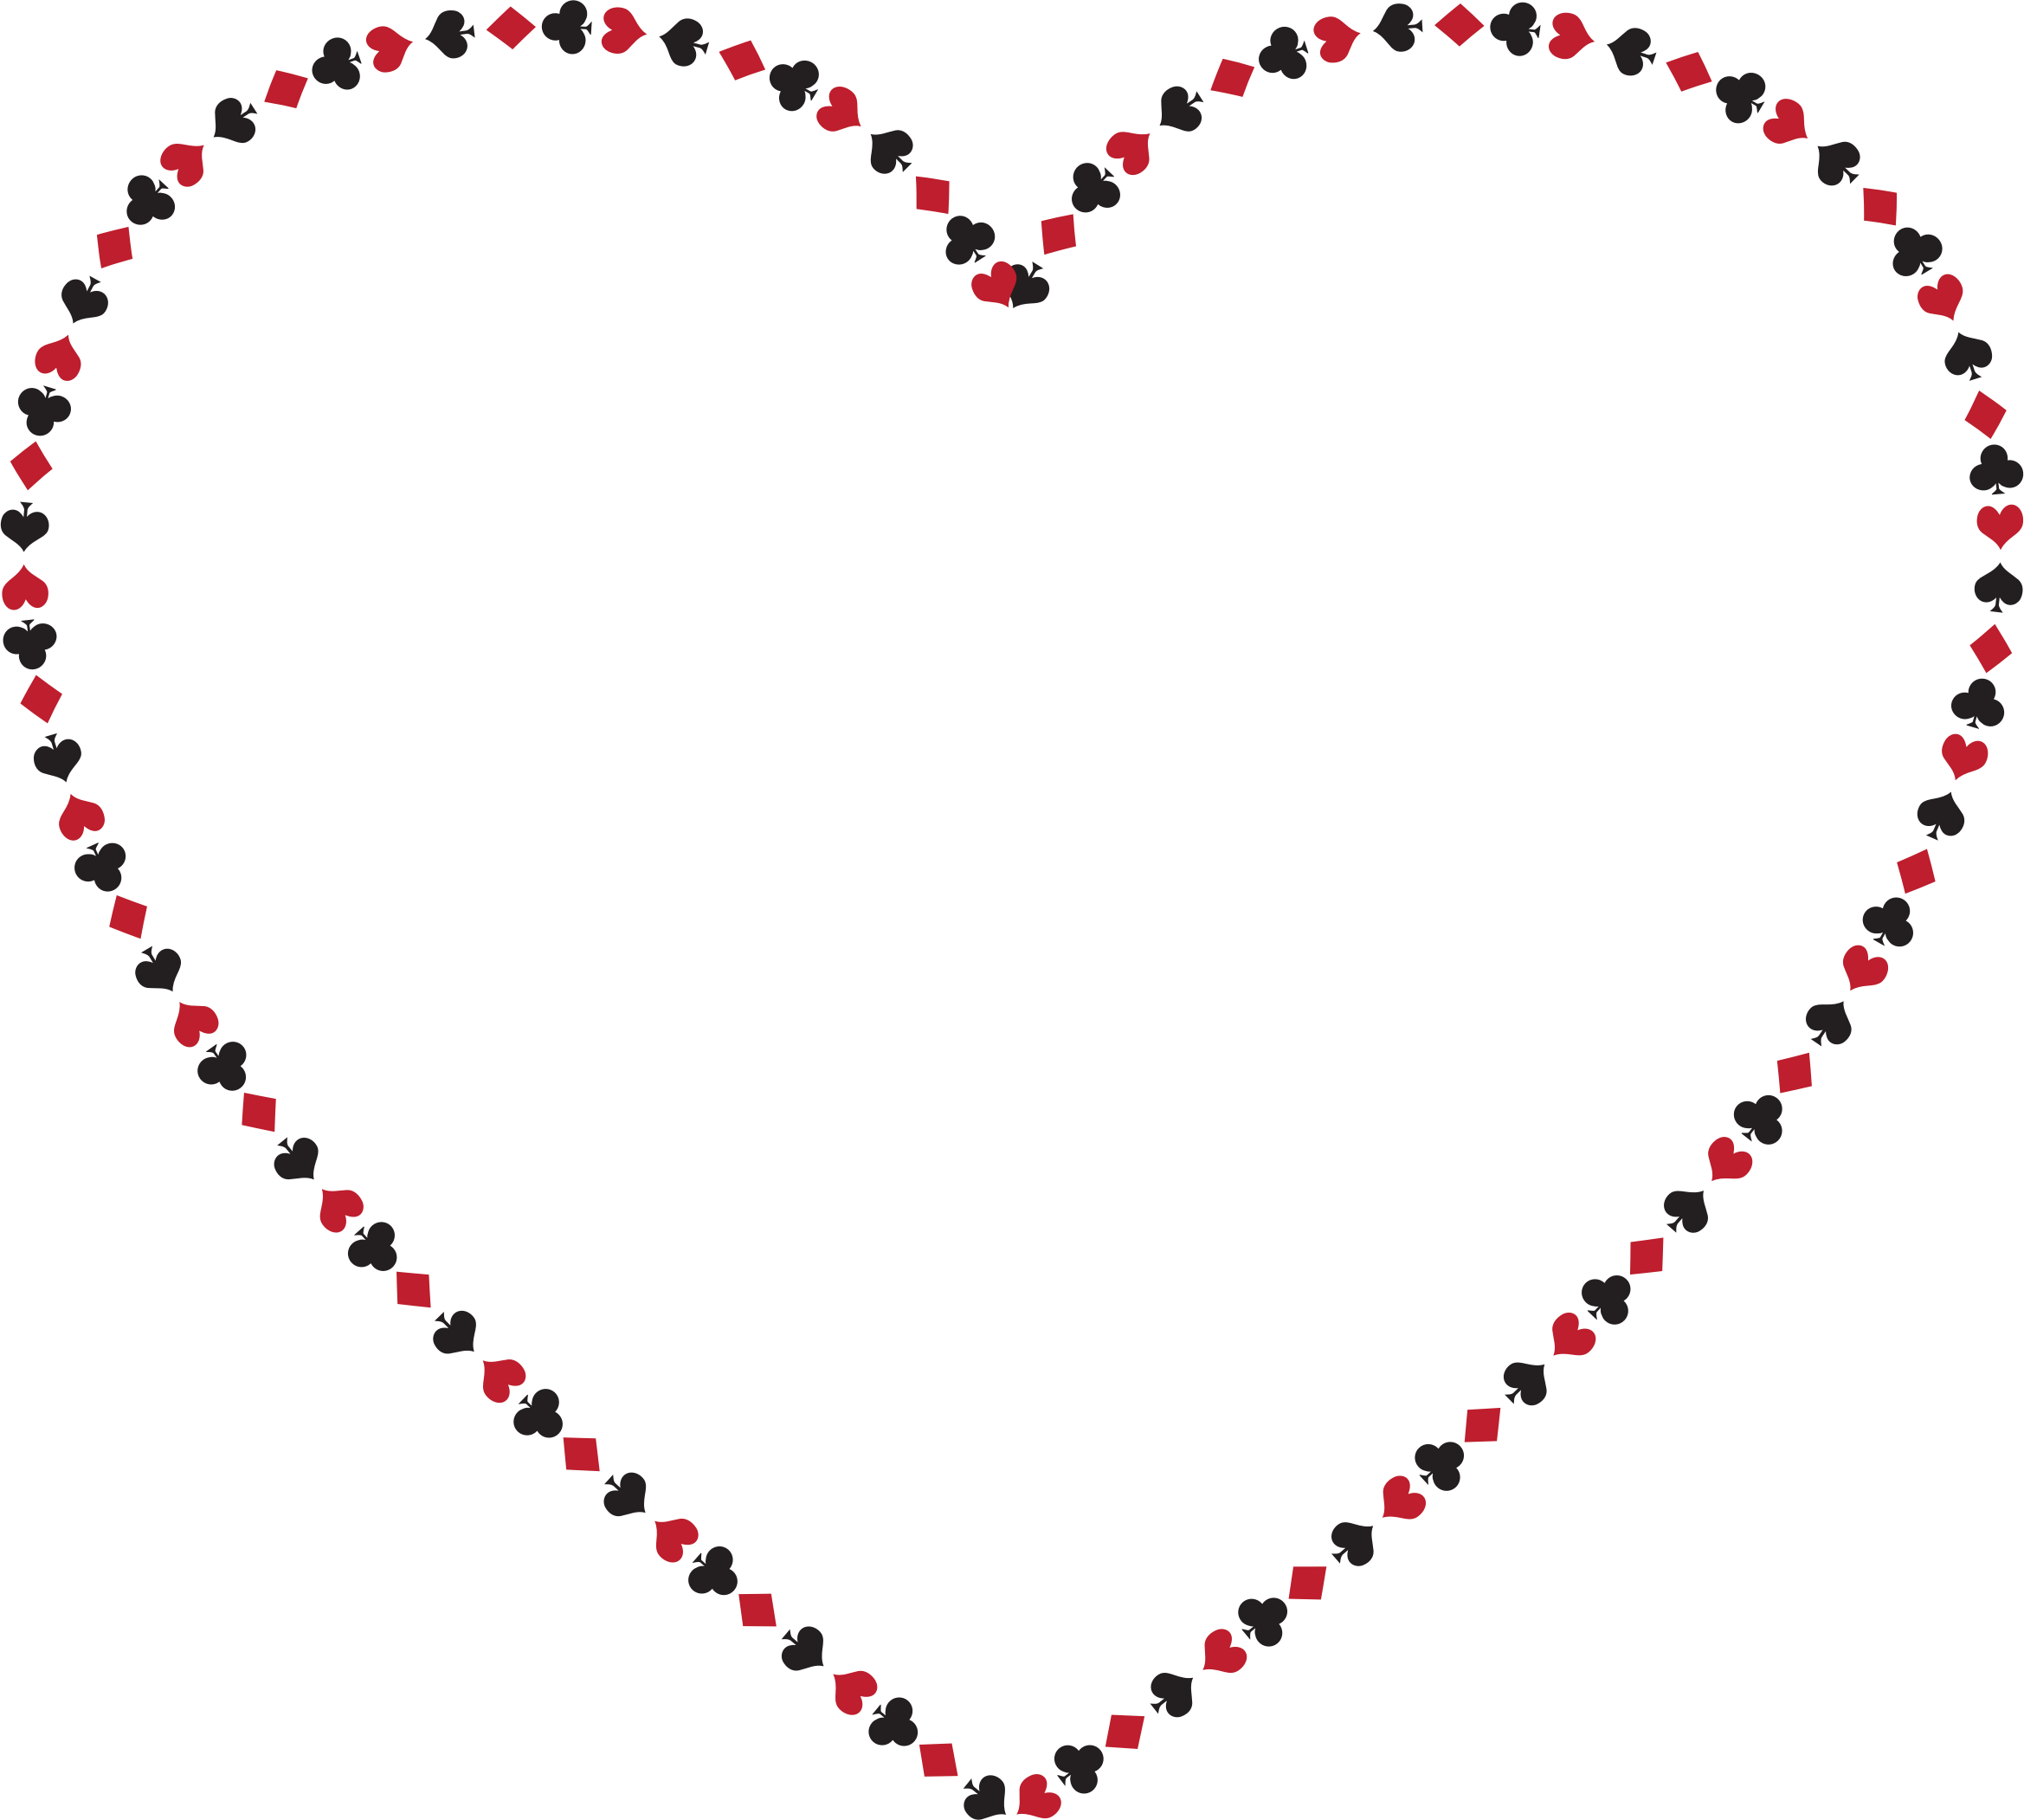 Hearts clipart card. Suits heart big image